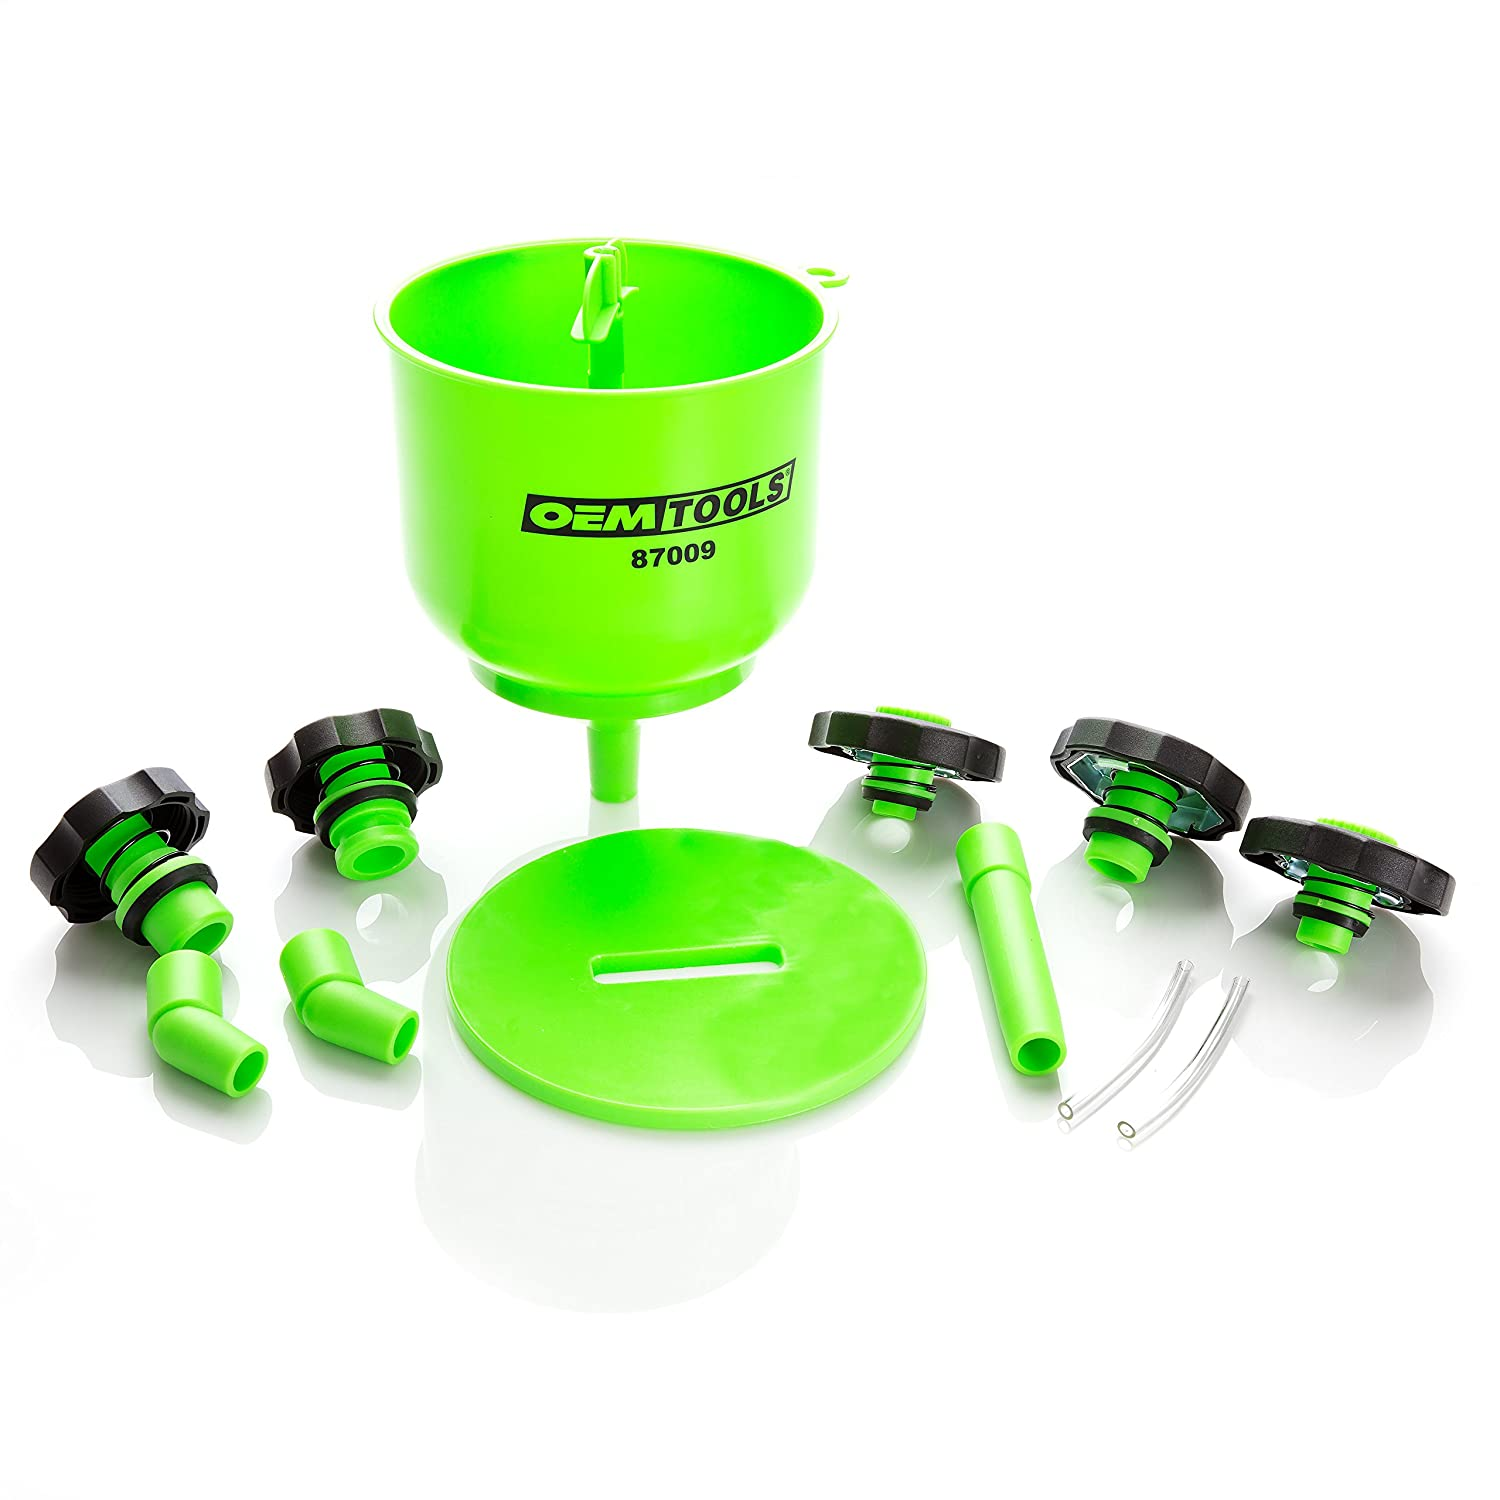 OEMTOOLS 87009 No-Spill Coolant Filling Plastic Funnel Kit Green GREAT NECK